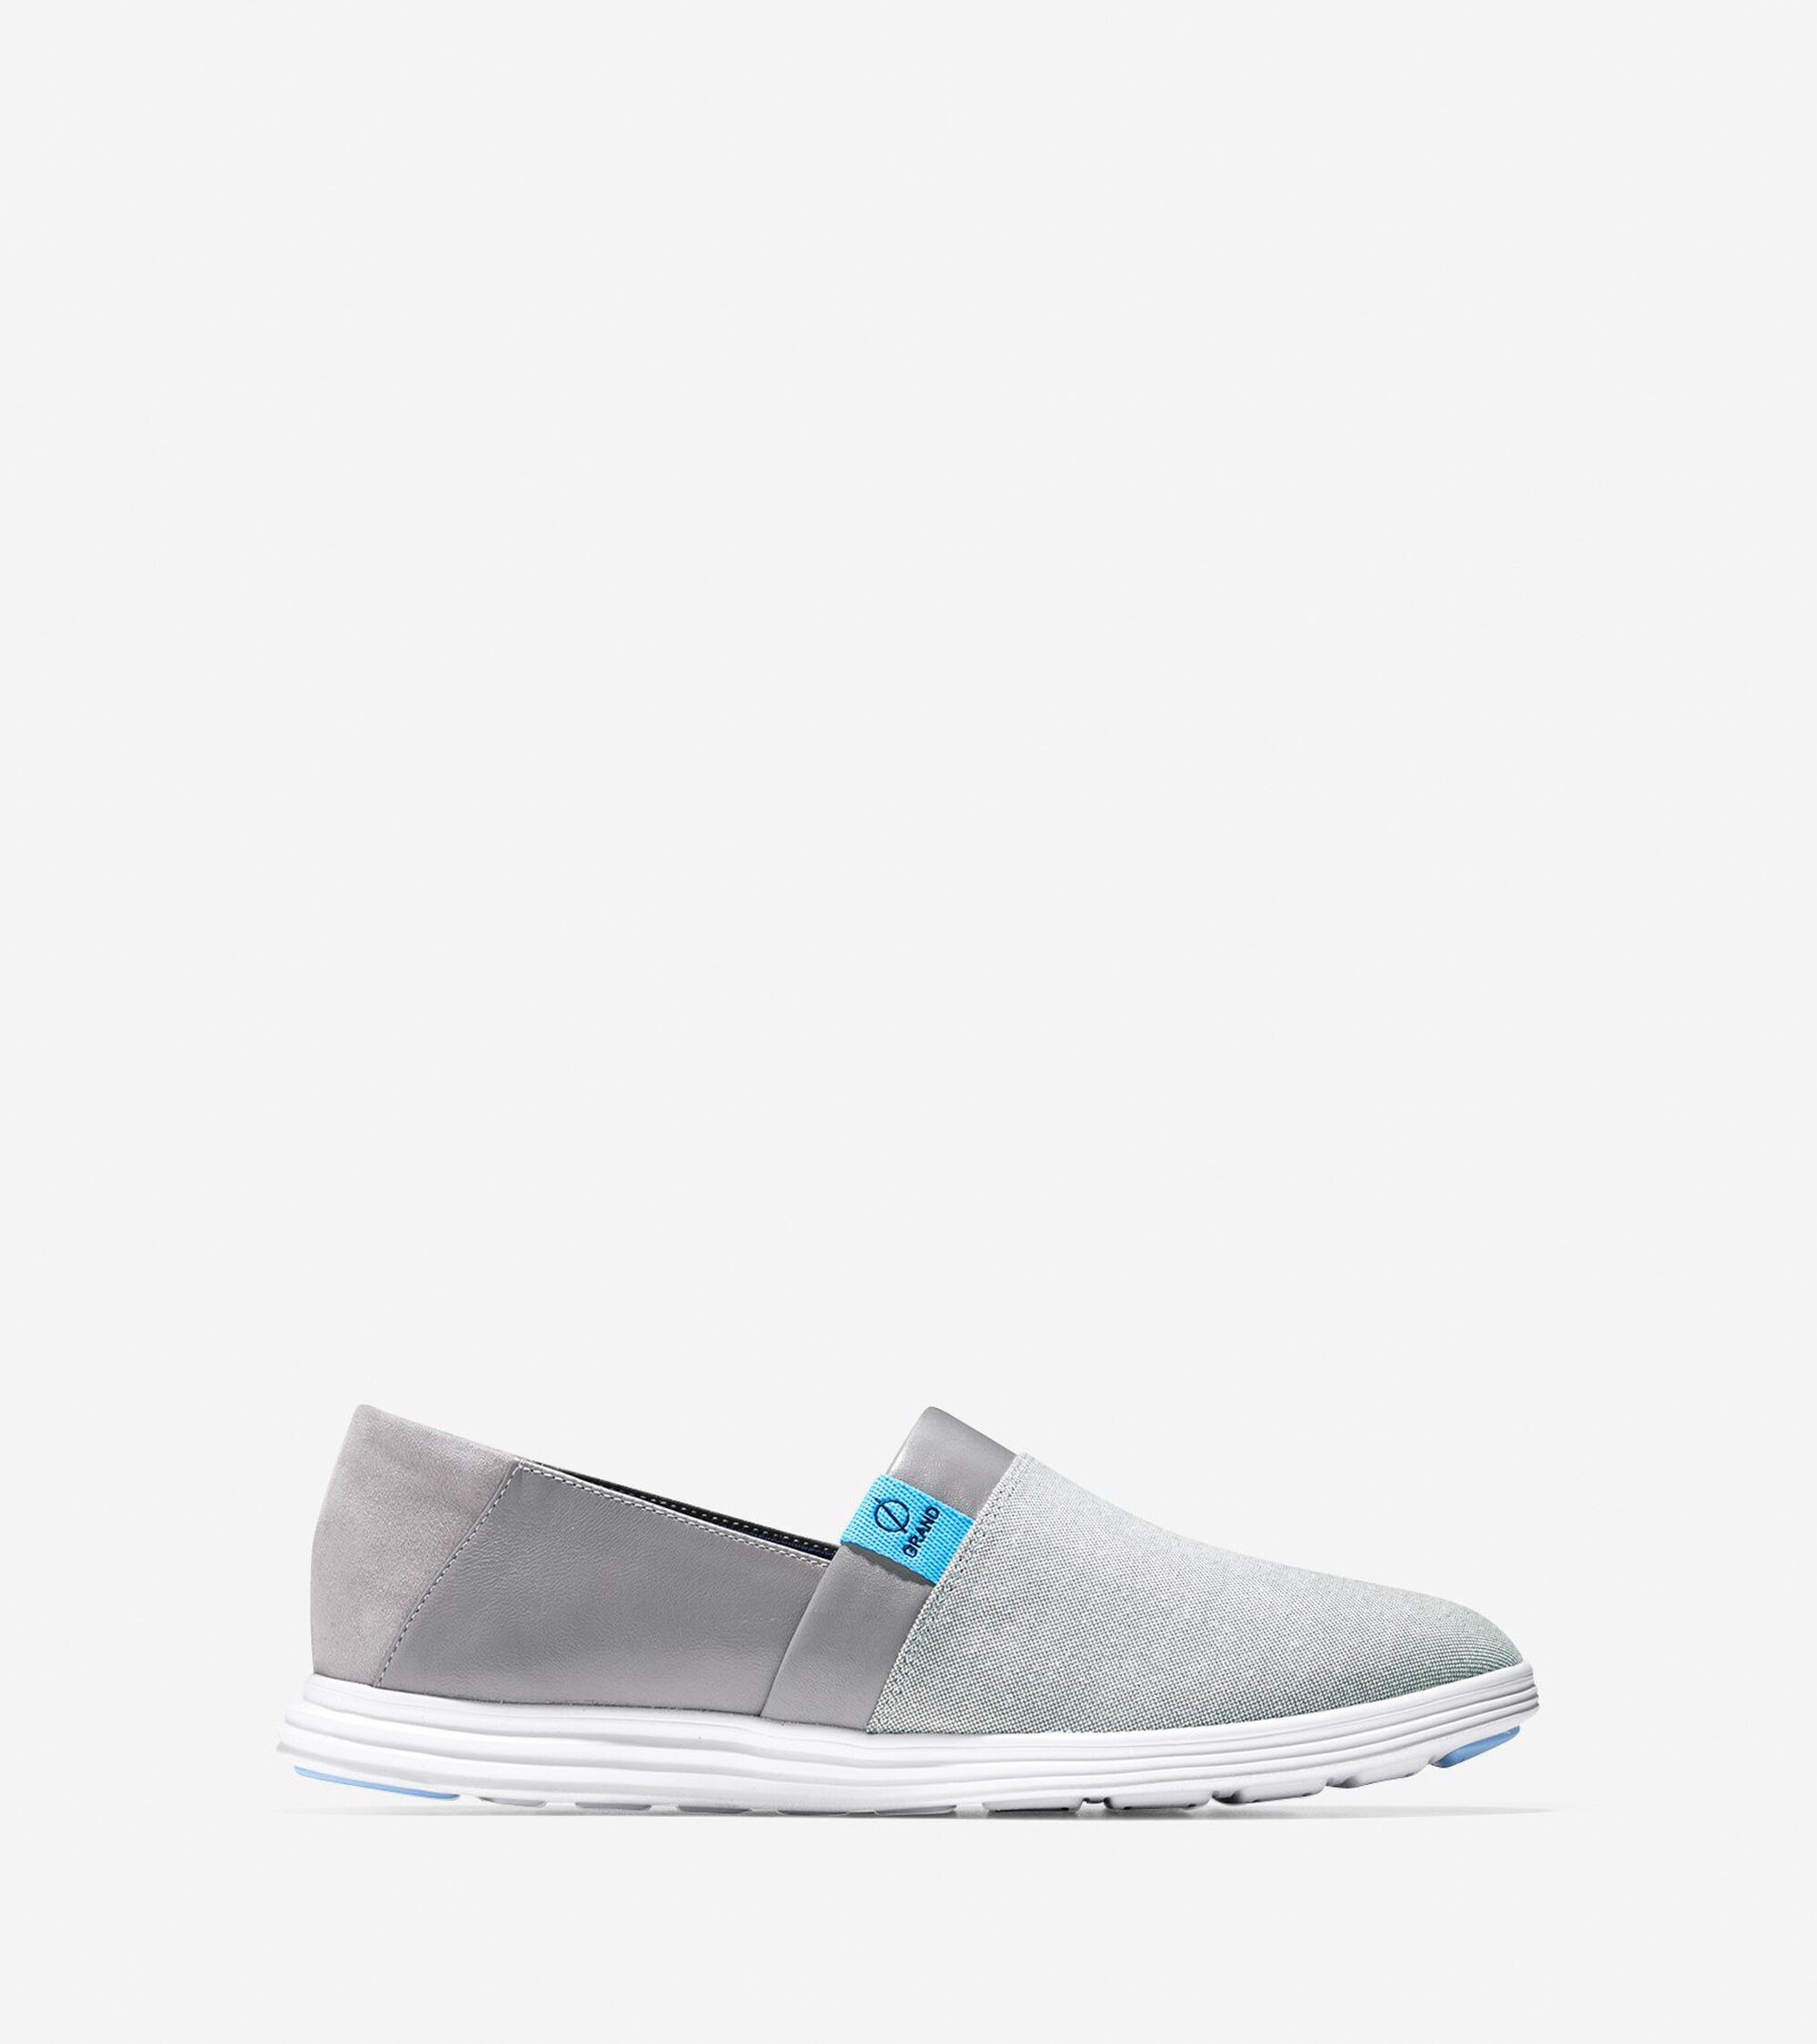 Sneakers > Ella Grand Slip On Sneaker